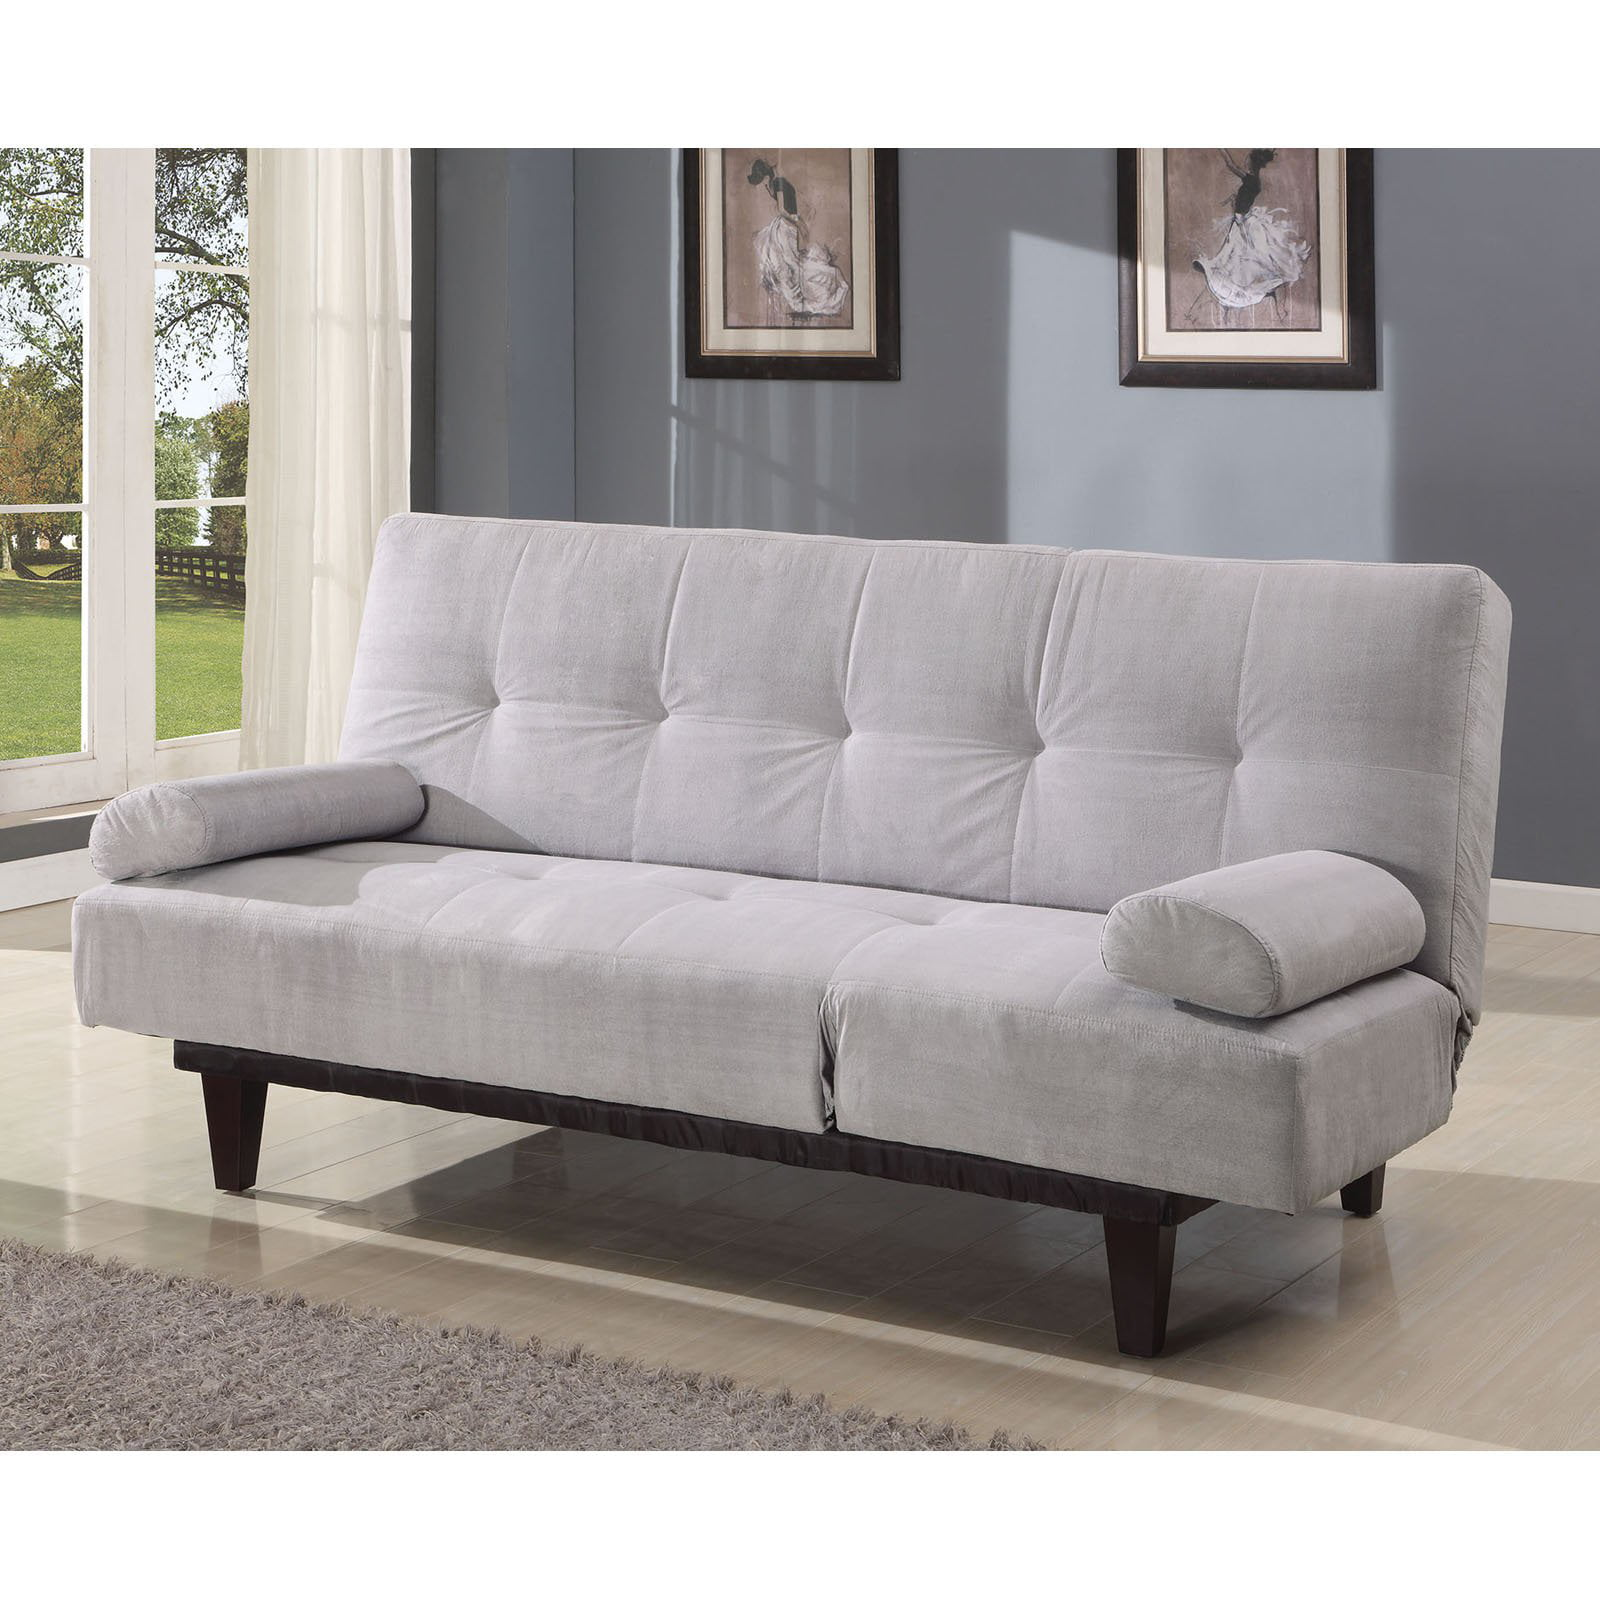 Barcelona Convertible Futon Sofa Bed and Lounger with Pillows